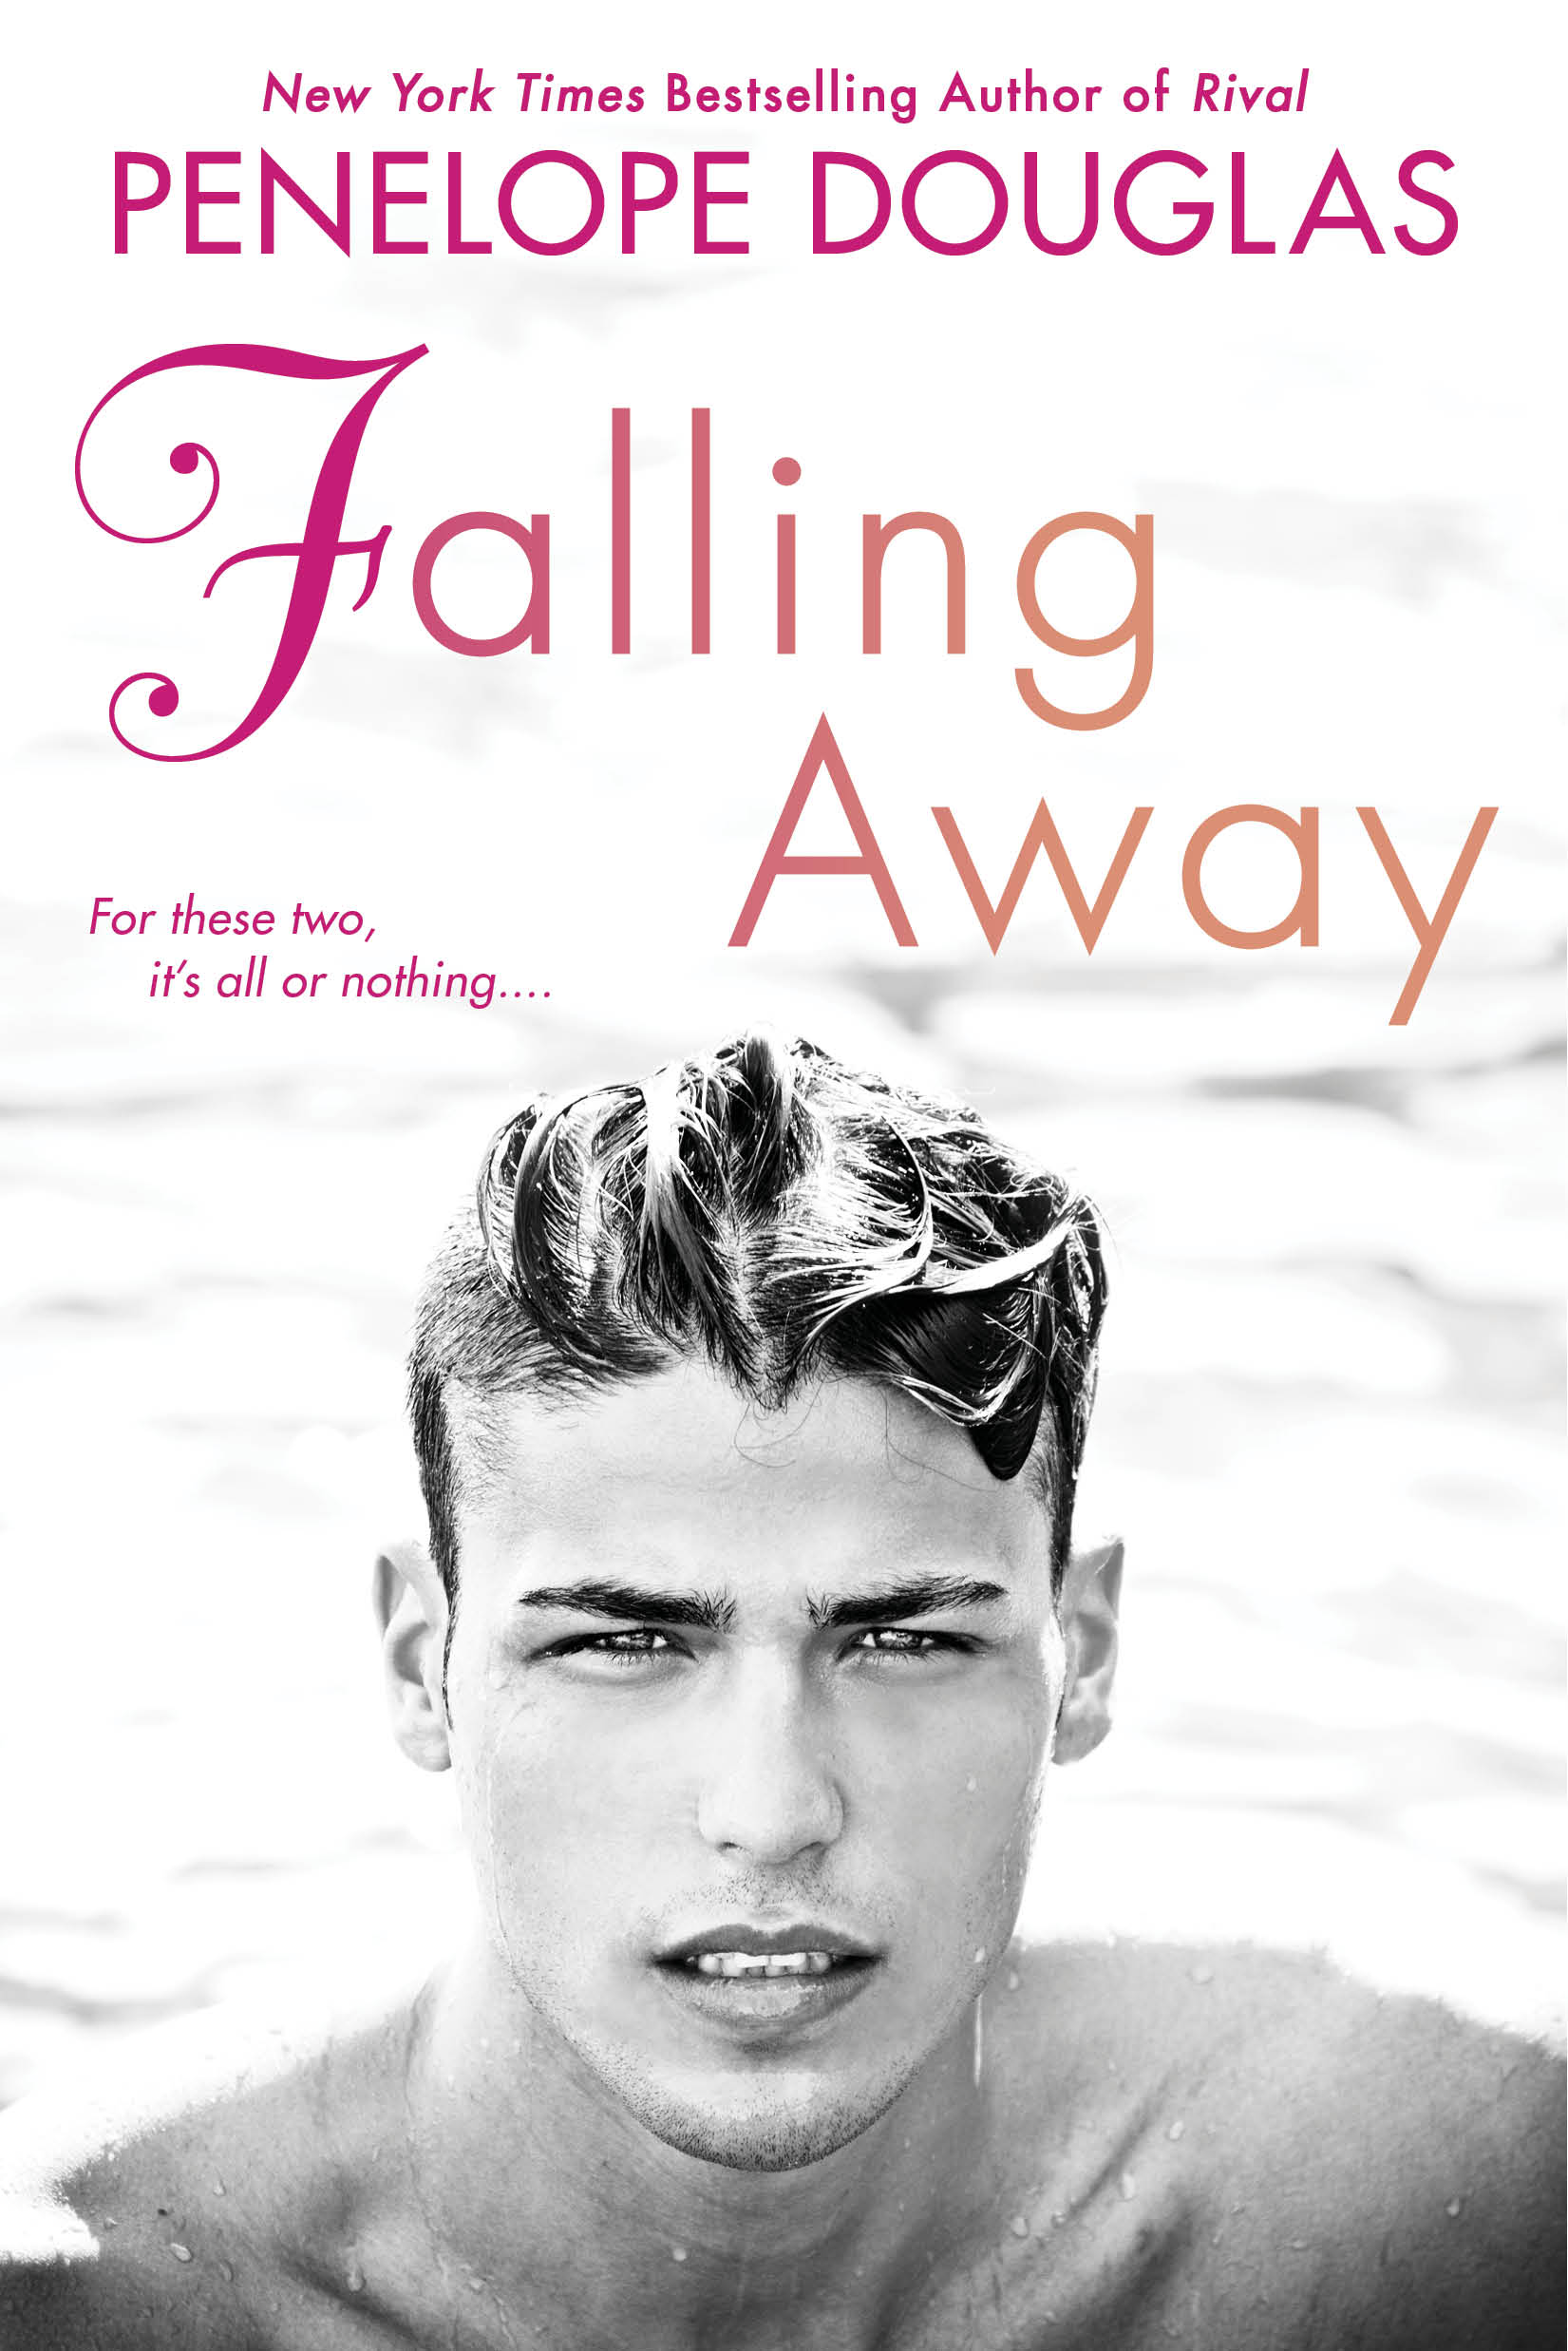 *~*Falling Away by Penelope Douglas Blog Tour – EXCLUSIVE Deleted Scene, Review & Giveaway*~*